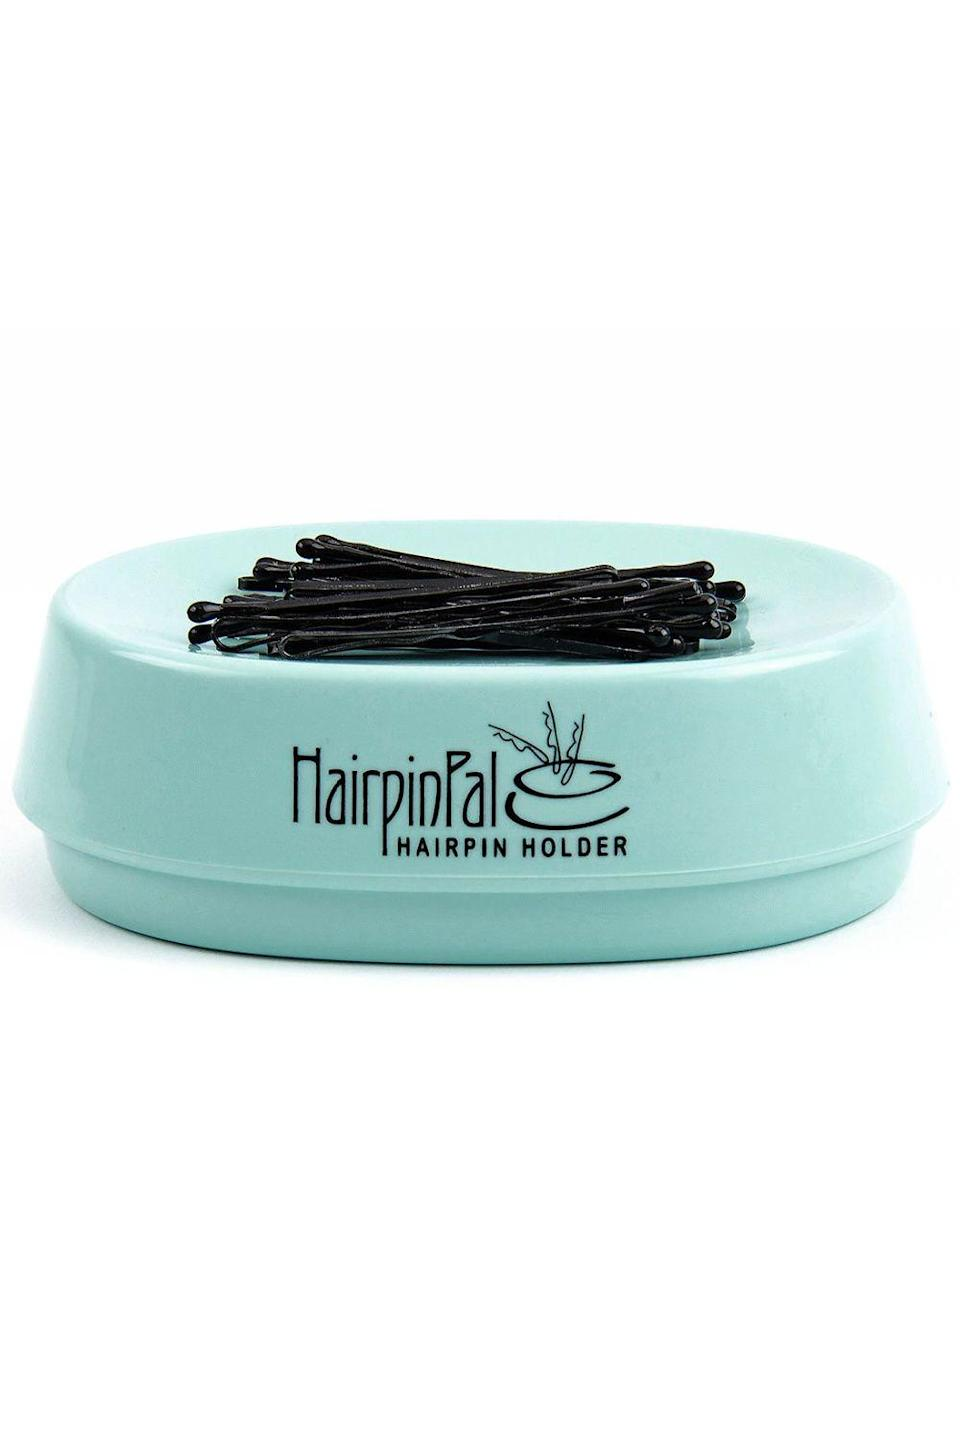 """<p><strong>HairpinPal</strong></p><p>amazon.com</p><p><strong>$14.98</strong></p><p><a href=""""https://www.amazon.com/dp/B00XZCTI7G?tag=syn-yahoo-20&ascsubtag=%5Bartid%7C2140.g.35717314%5Bsrc%7Cyahoo-us"""" rel=""""nofollow noopener"""" target=""""_blank"""" data-ylk=""""slk:shop"""" class=""""link rapid-noclick-resp"""">shop</a></p><p>This lil magnet tray will make sure that your <a href=""""https://www.cosmopolitan.com/style-beauty/beauty/advice/a6123/life-changing-bobby-pin-tricks/"""" rel=""""nofollow noopener"""" target=""""_blank"""" data-ylk=""""slk:bobby pins"""" class=""""link rapid-noclick-resp"""">bobby pins</a> never run off and go missing ever again—as long as you remember to put them back on top of it, of course.</p>"""